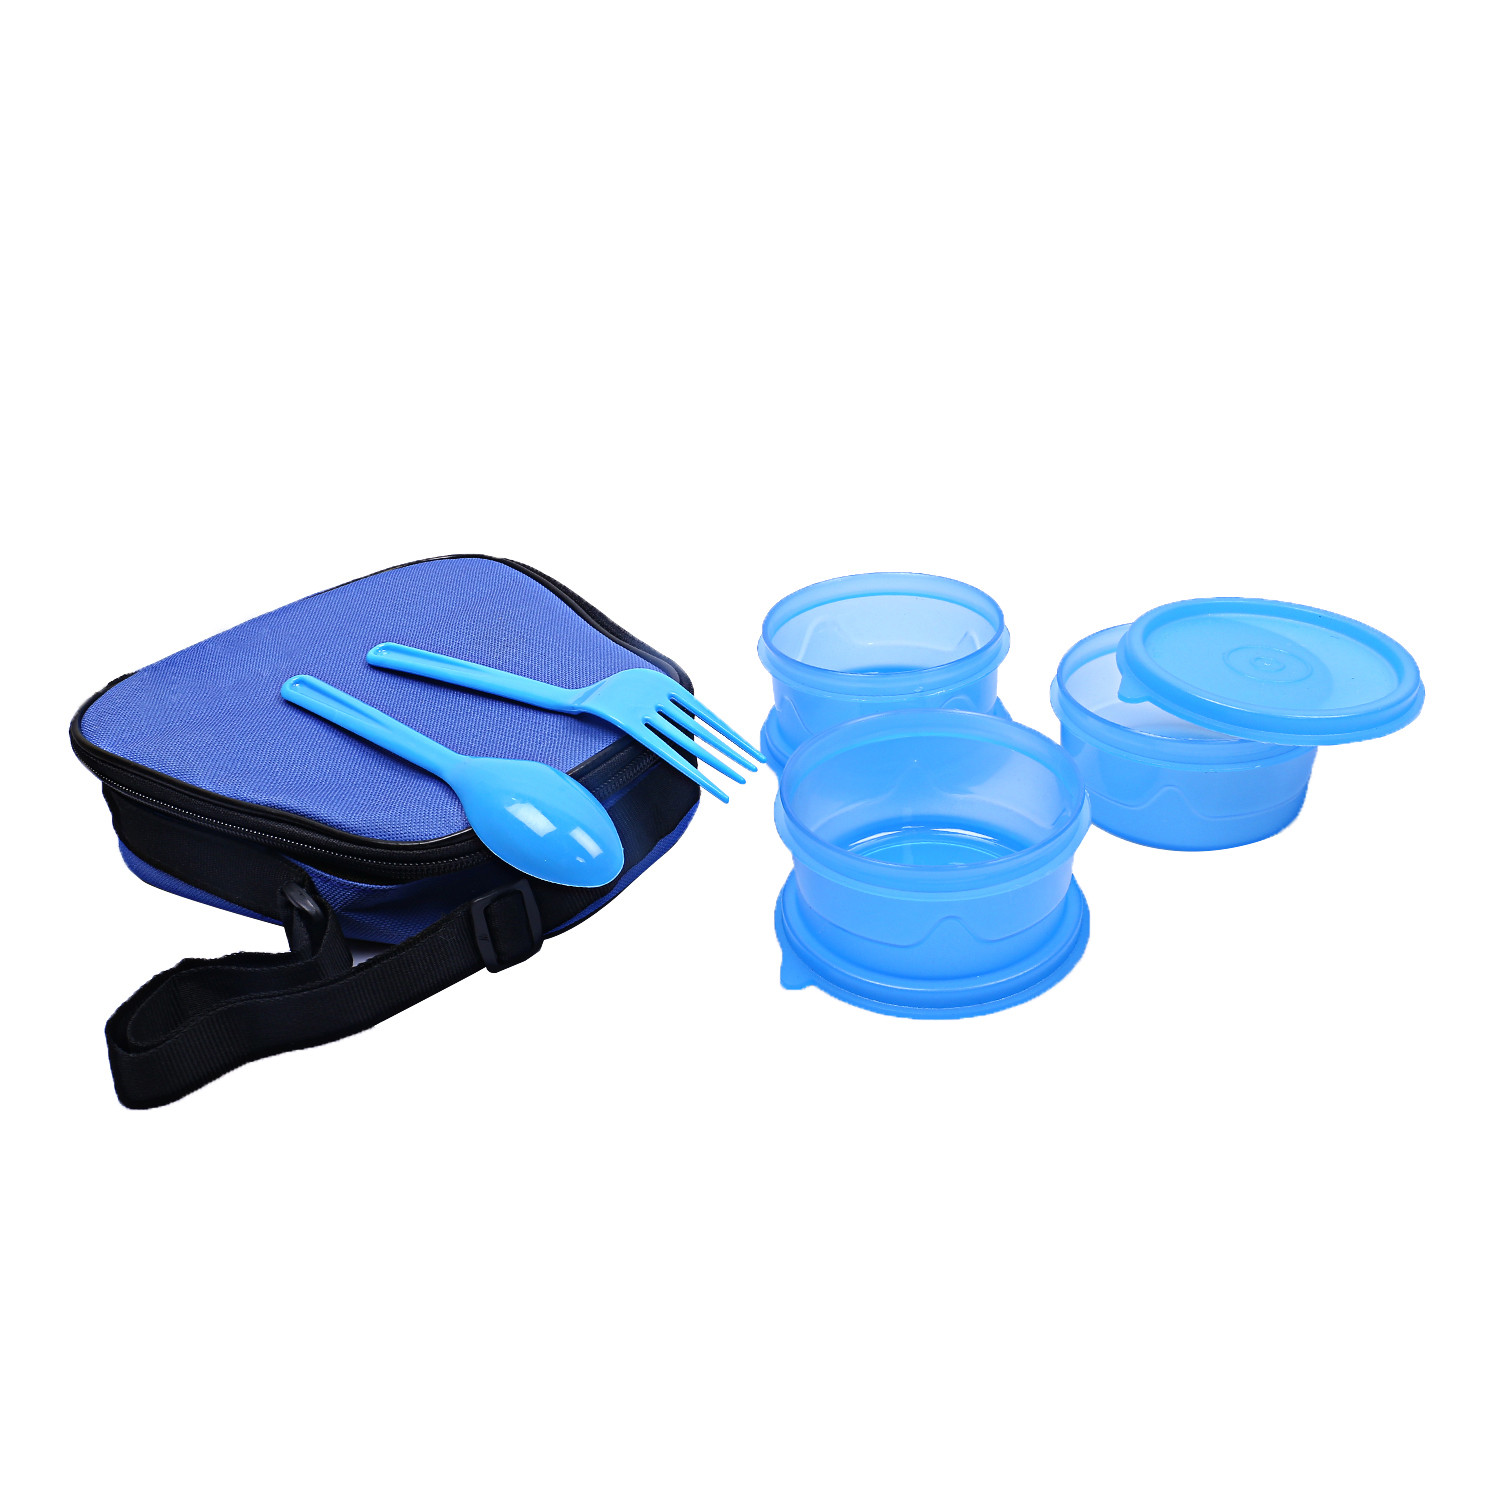 Kuber Industries Insulated Tiffin Lunch Box 3 Compartment (Multi)